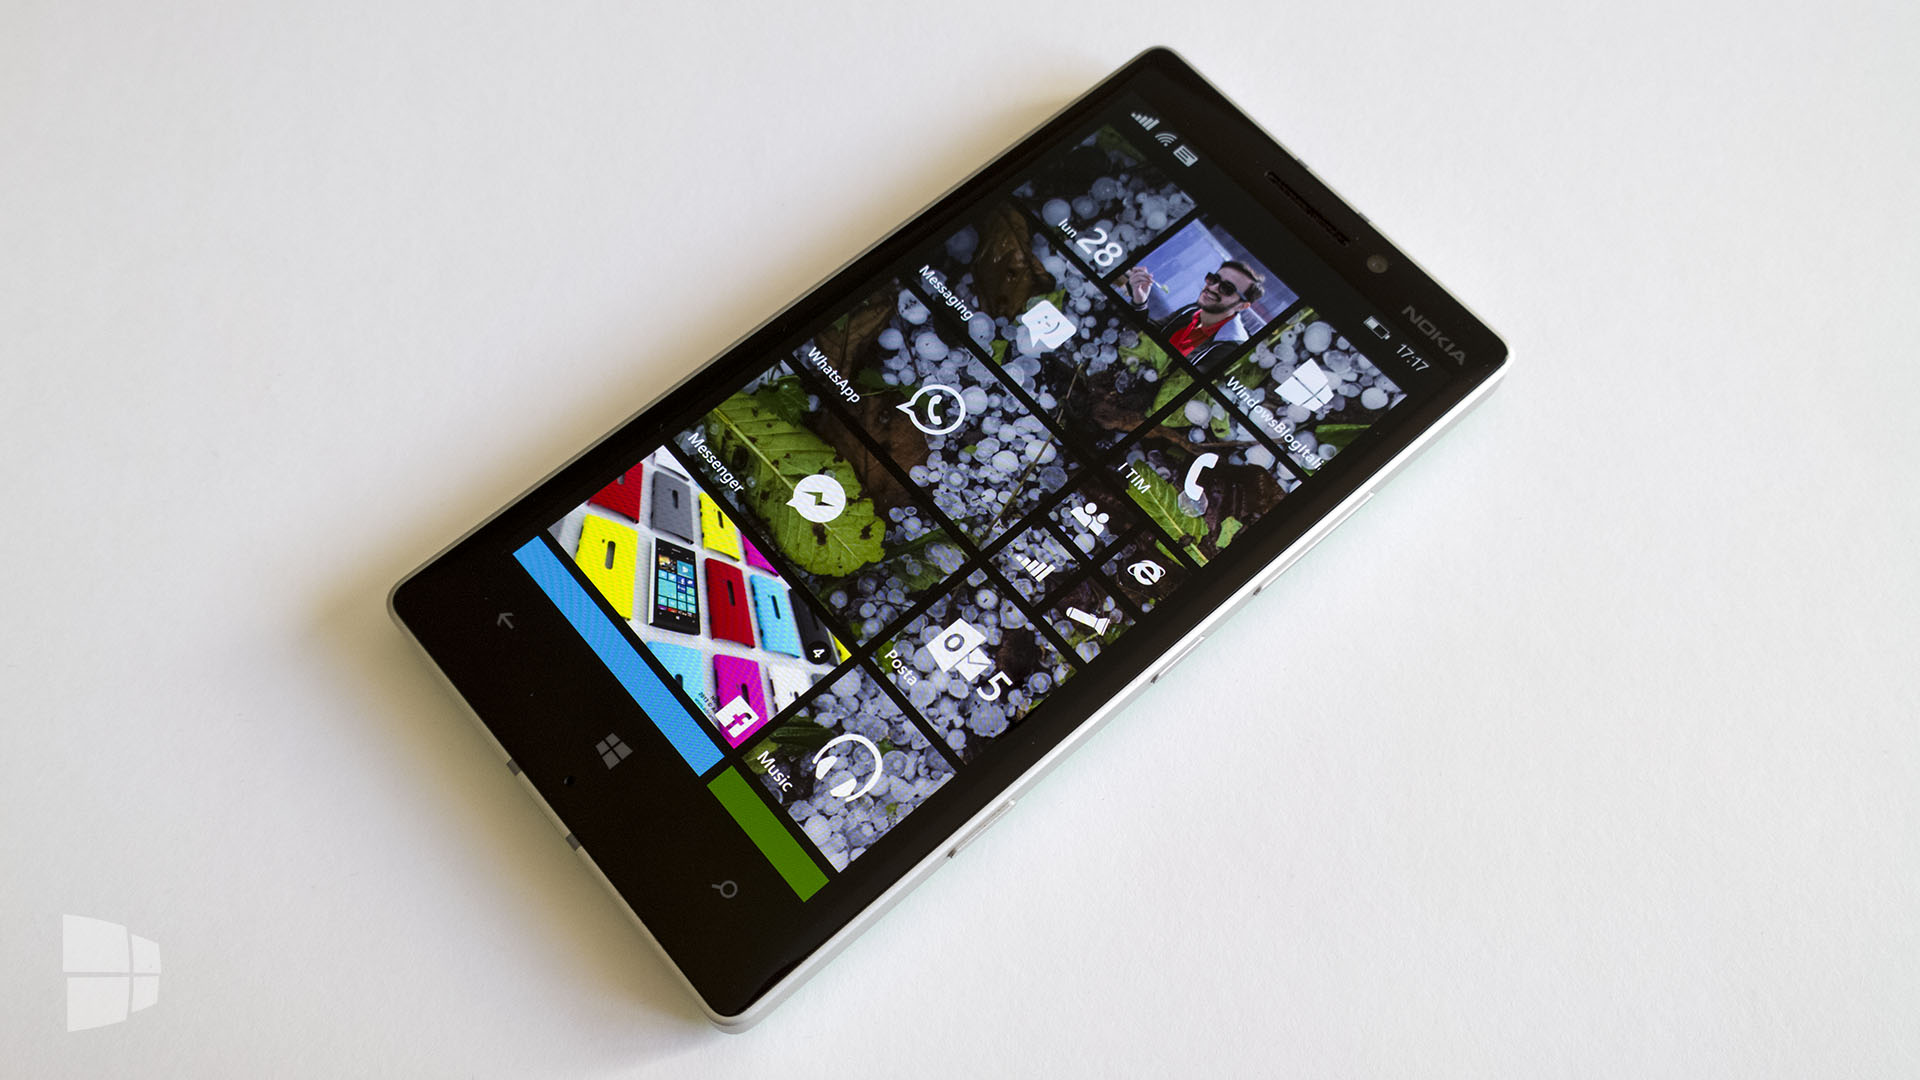 Nokia Lumia 930 Display